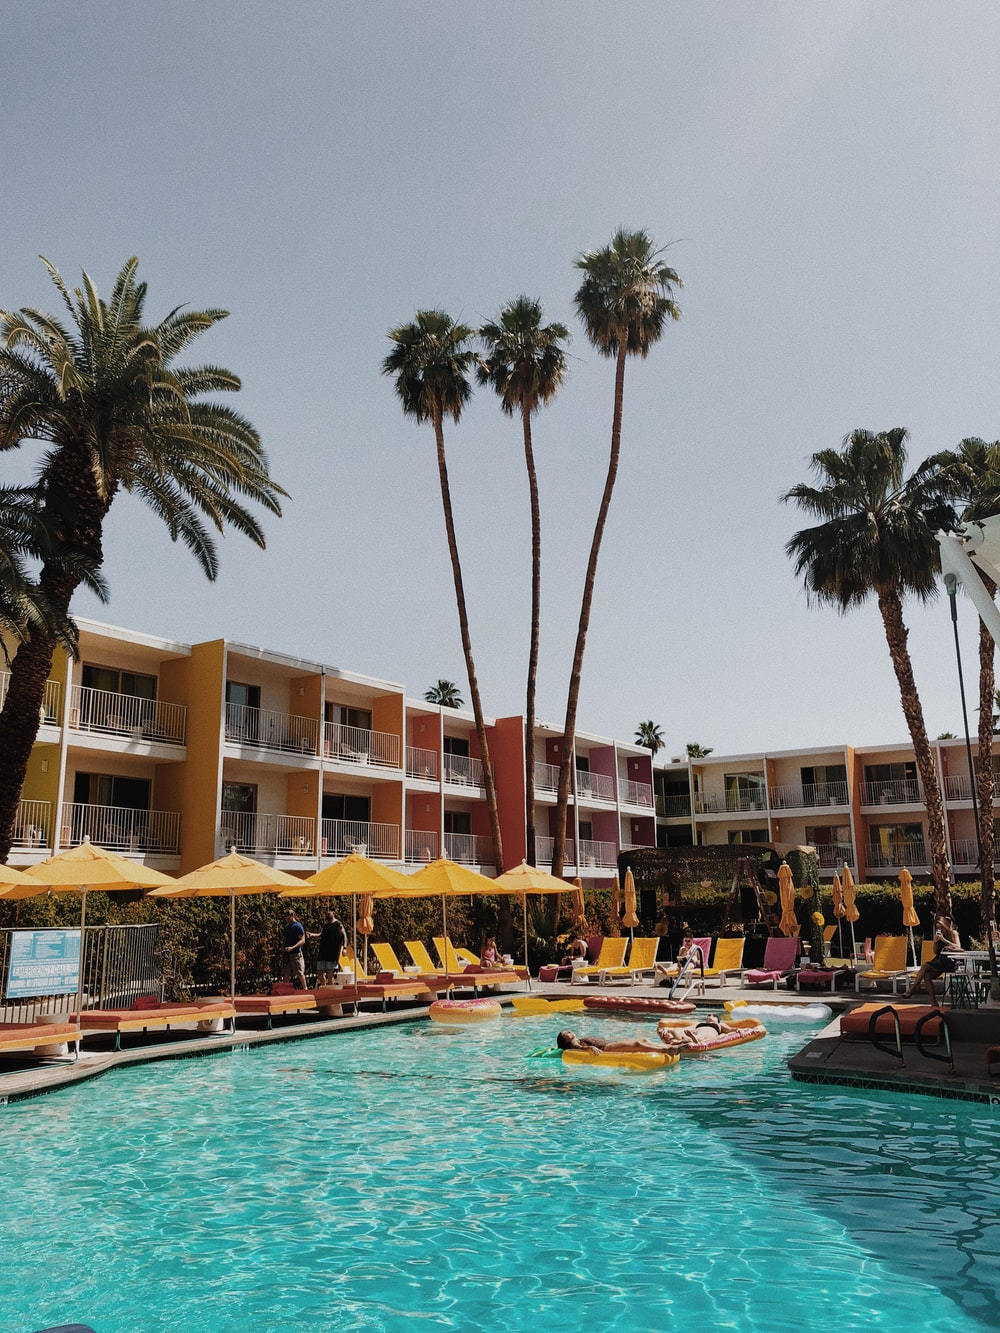 palm trees near pool and building